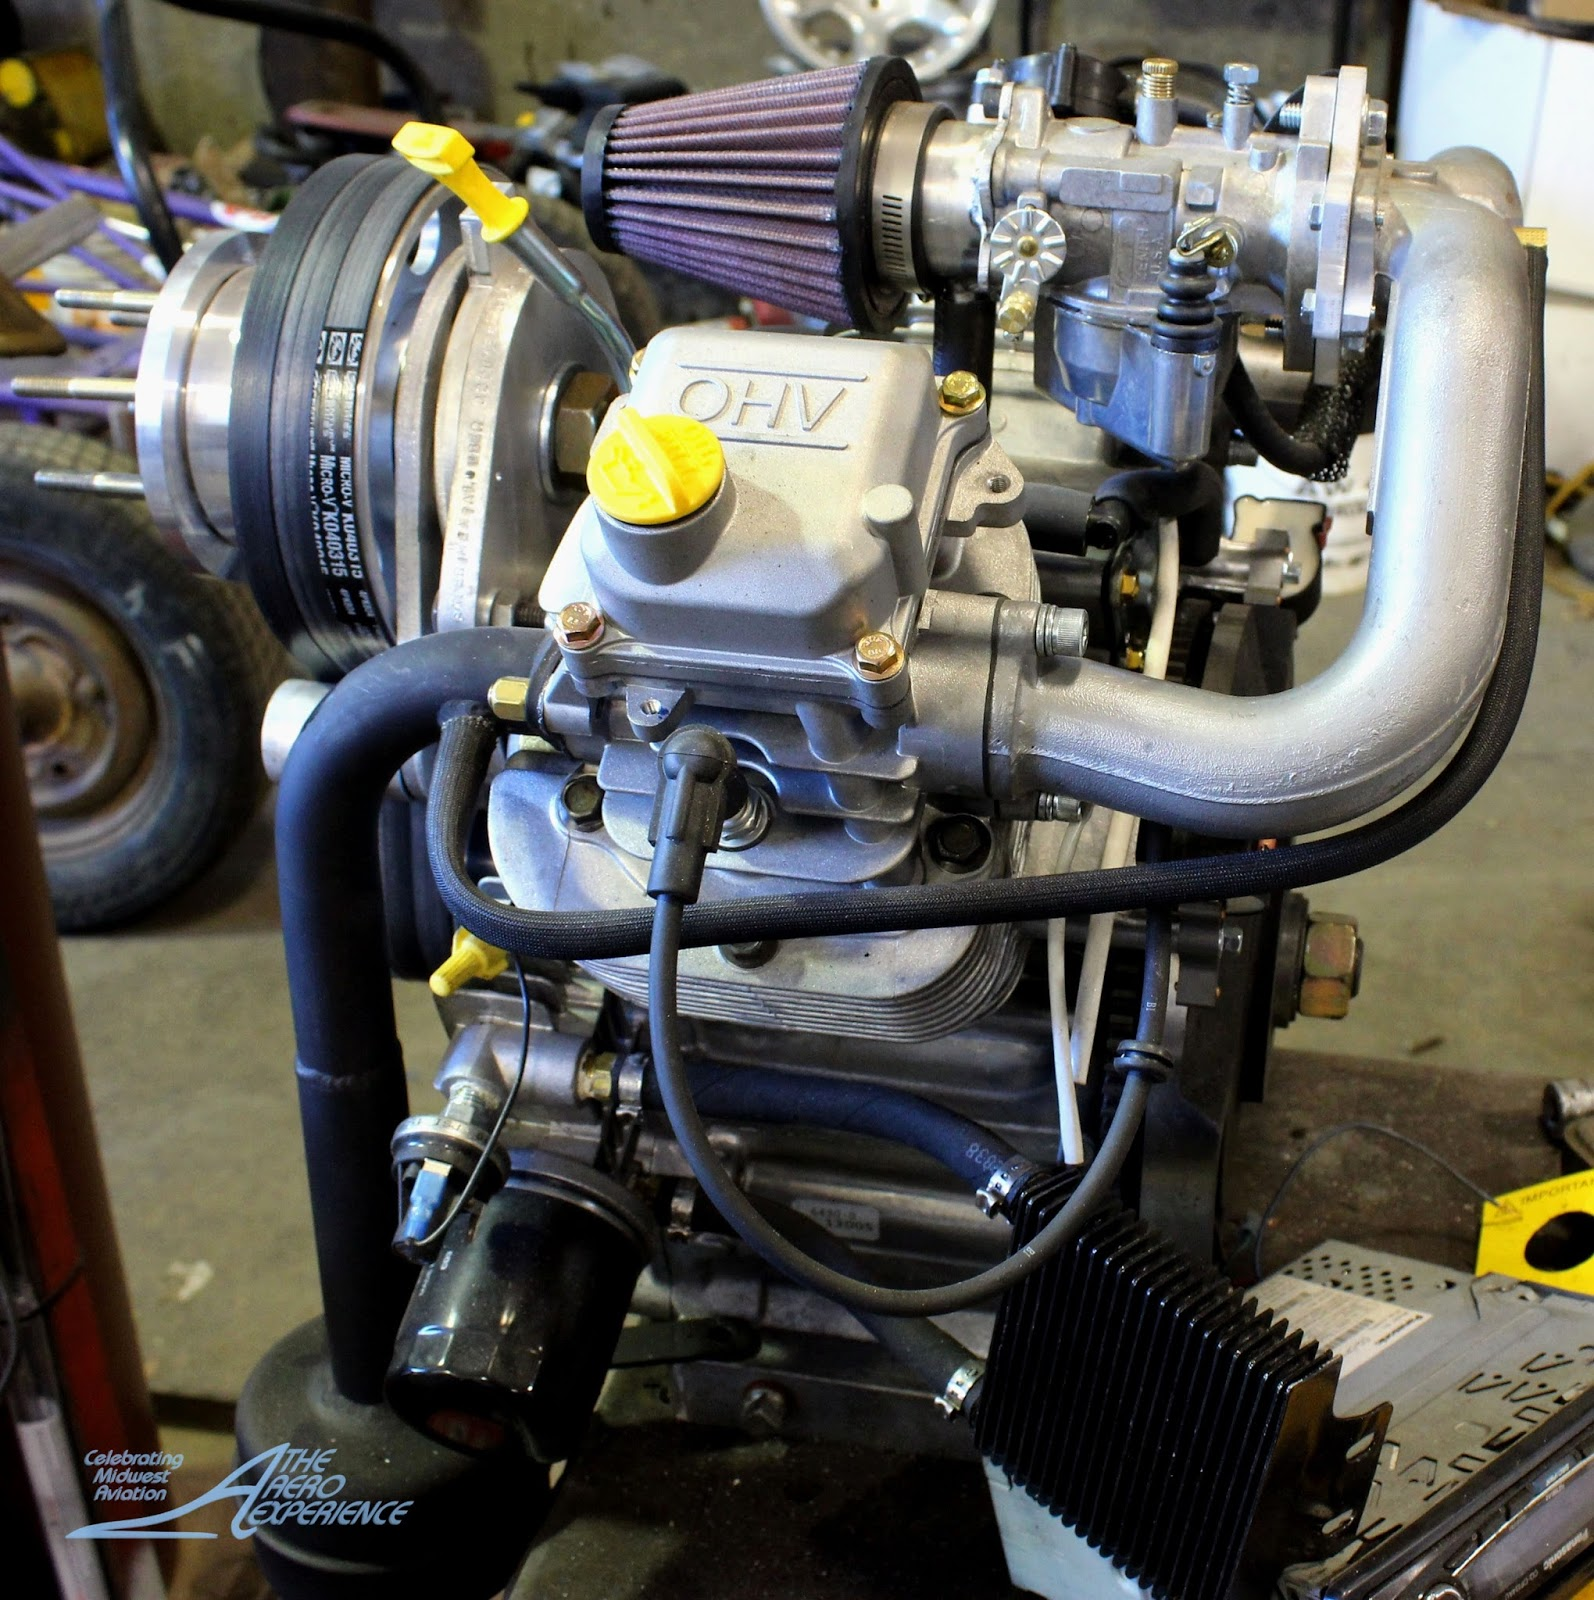 Vw 1600 Max Rpm: The Aero Experience: Midwest Aviation Family Business